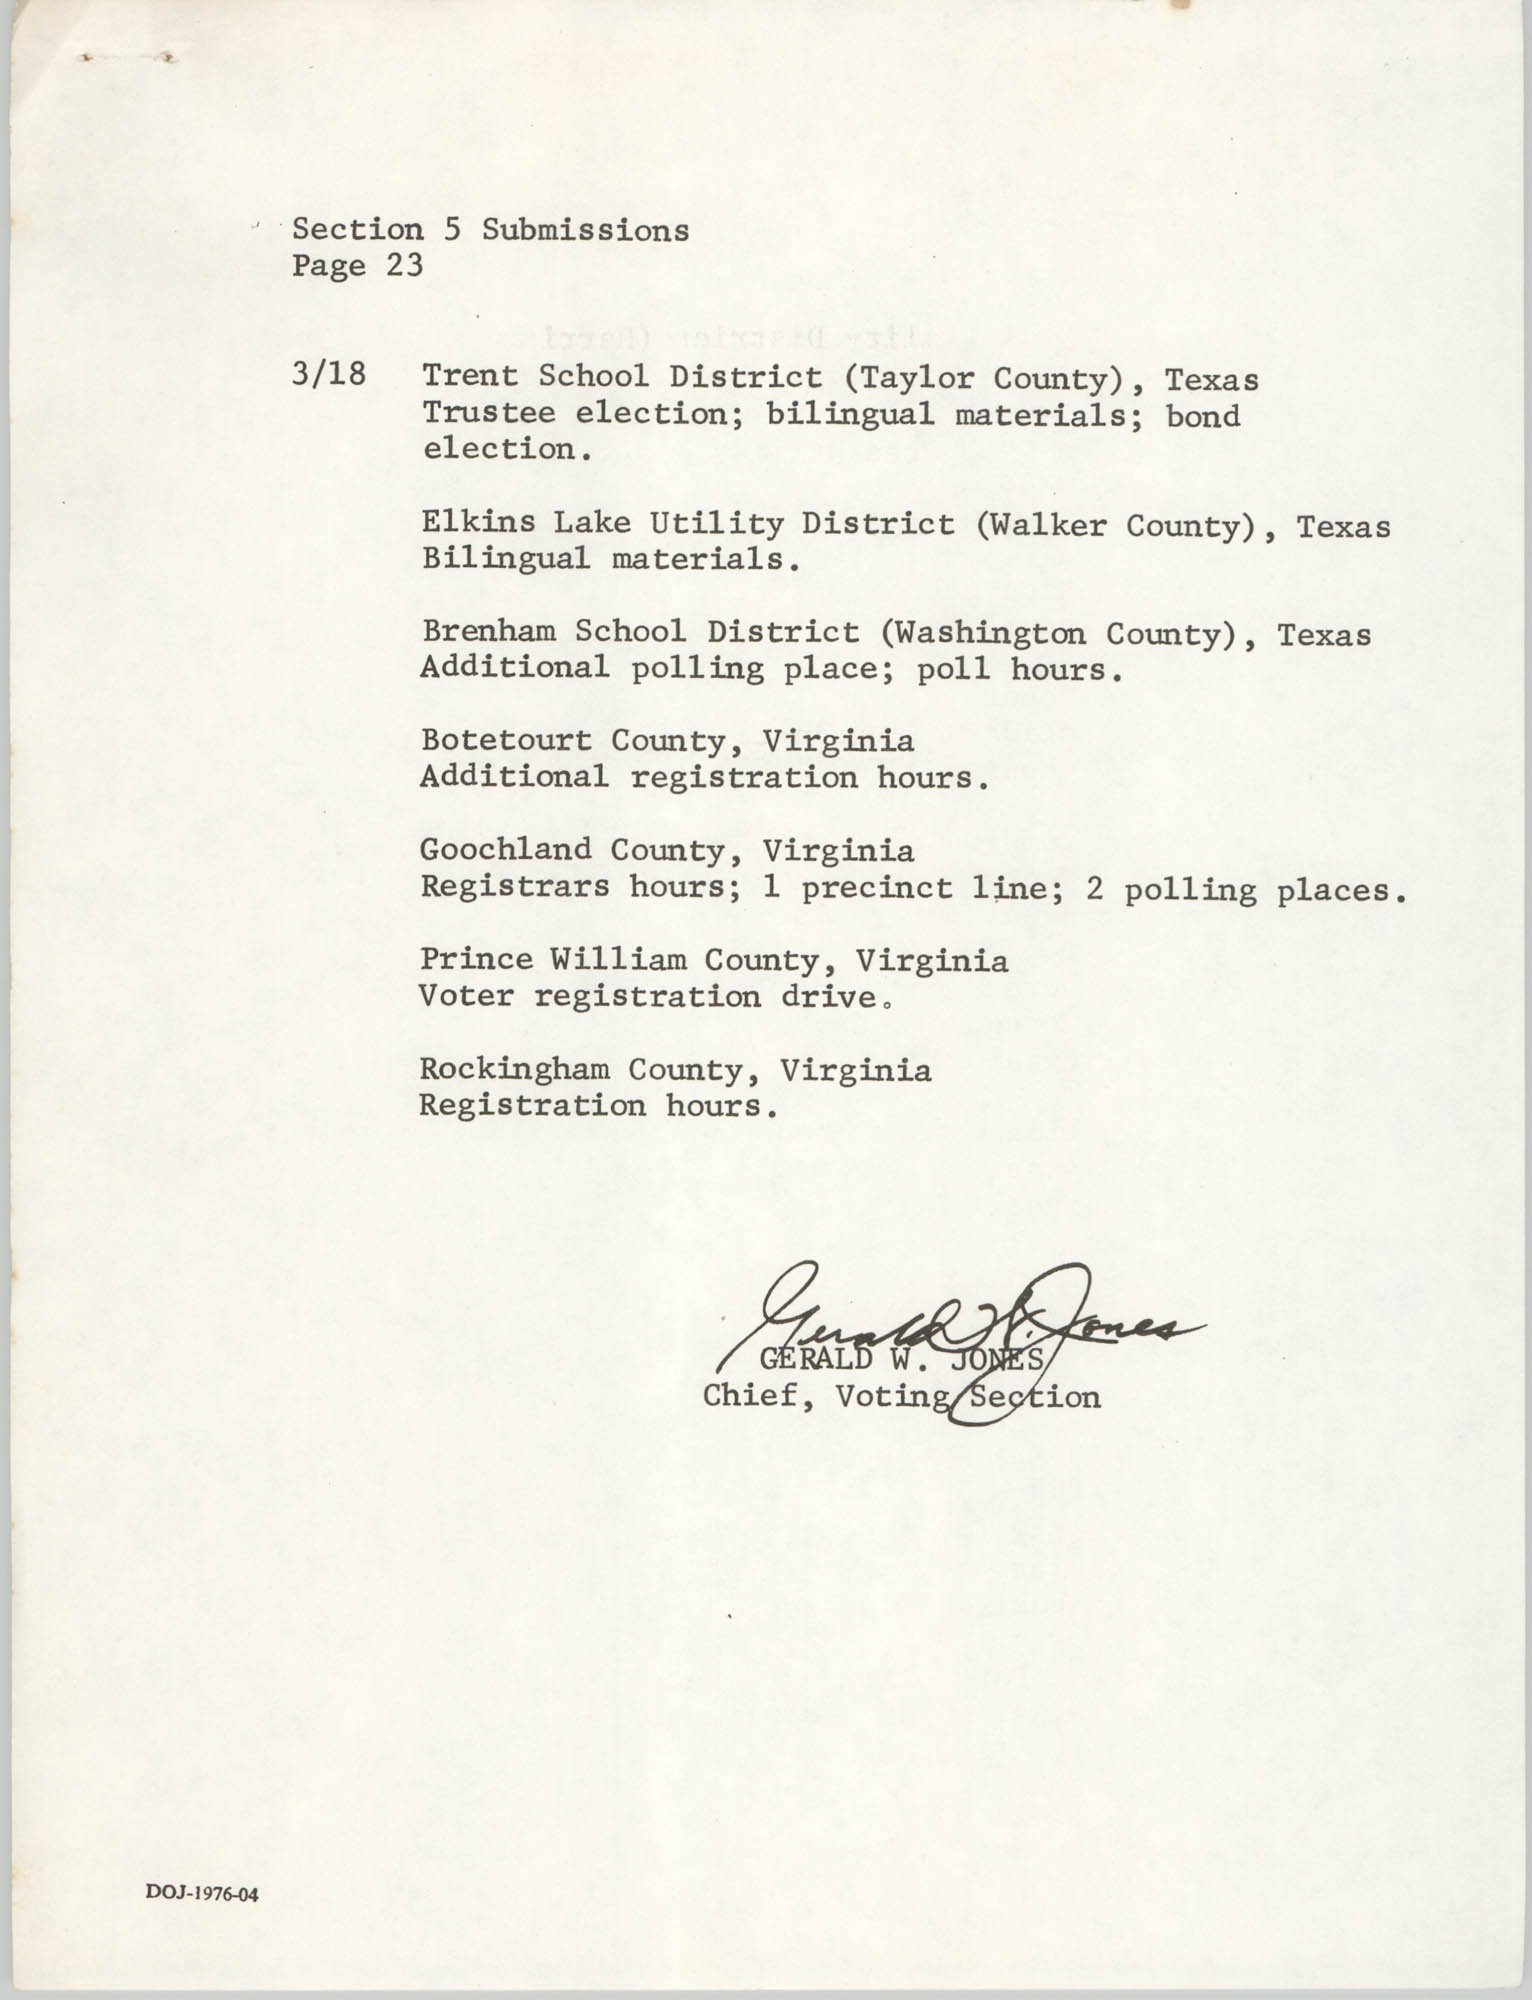 United States Department of Justice Notice, March 26, 1976, Page 23